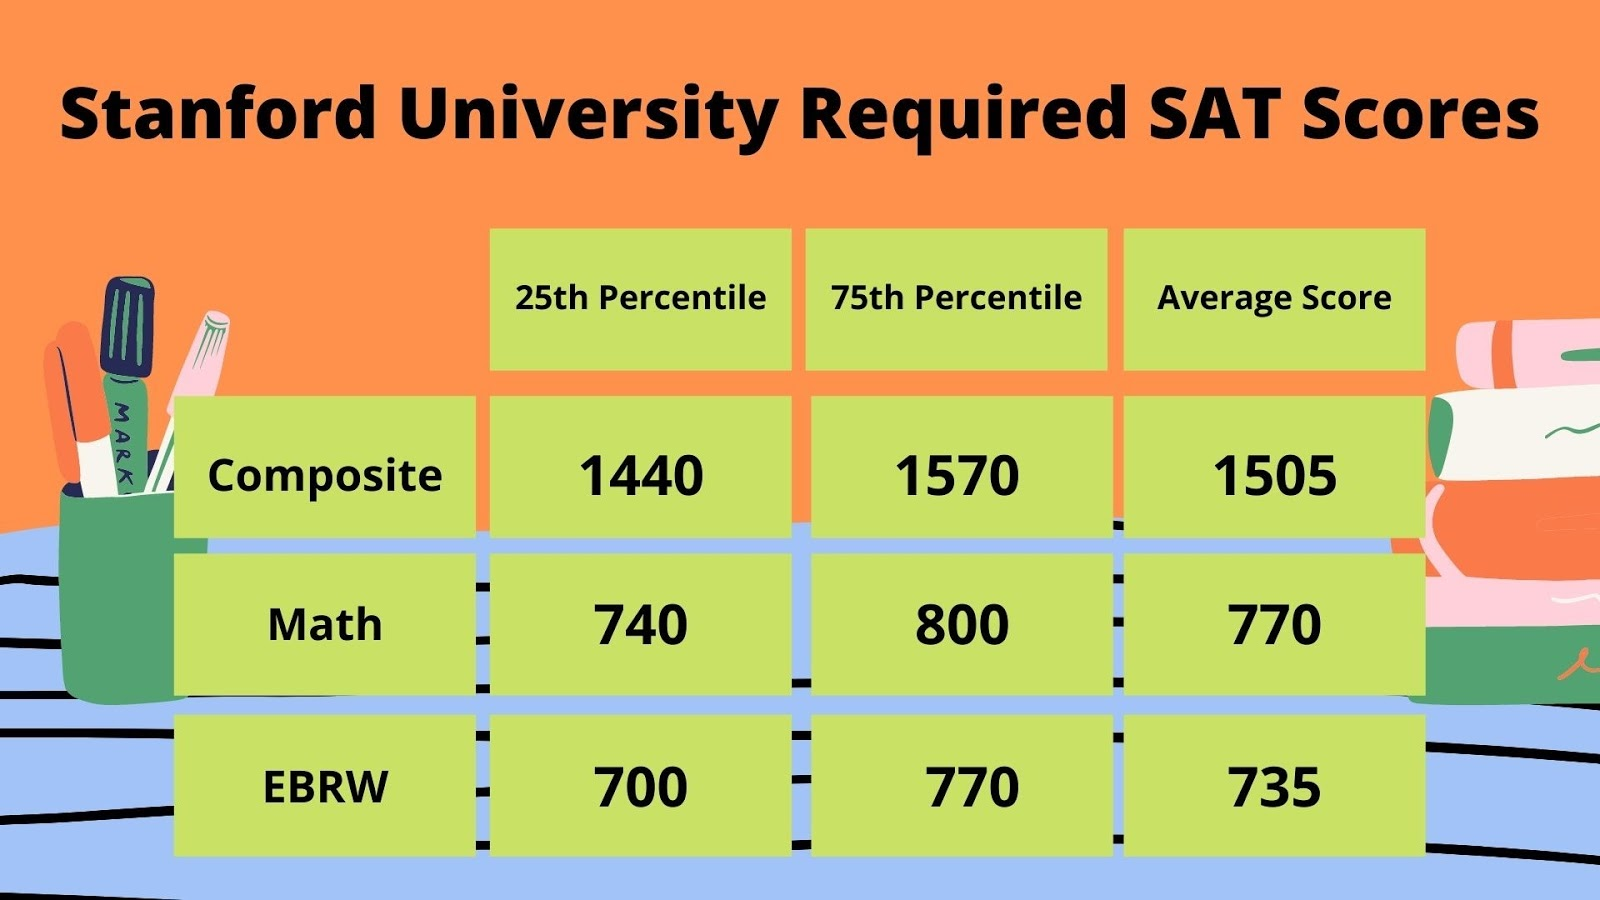 Stanford University Required SAT Scores